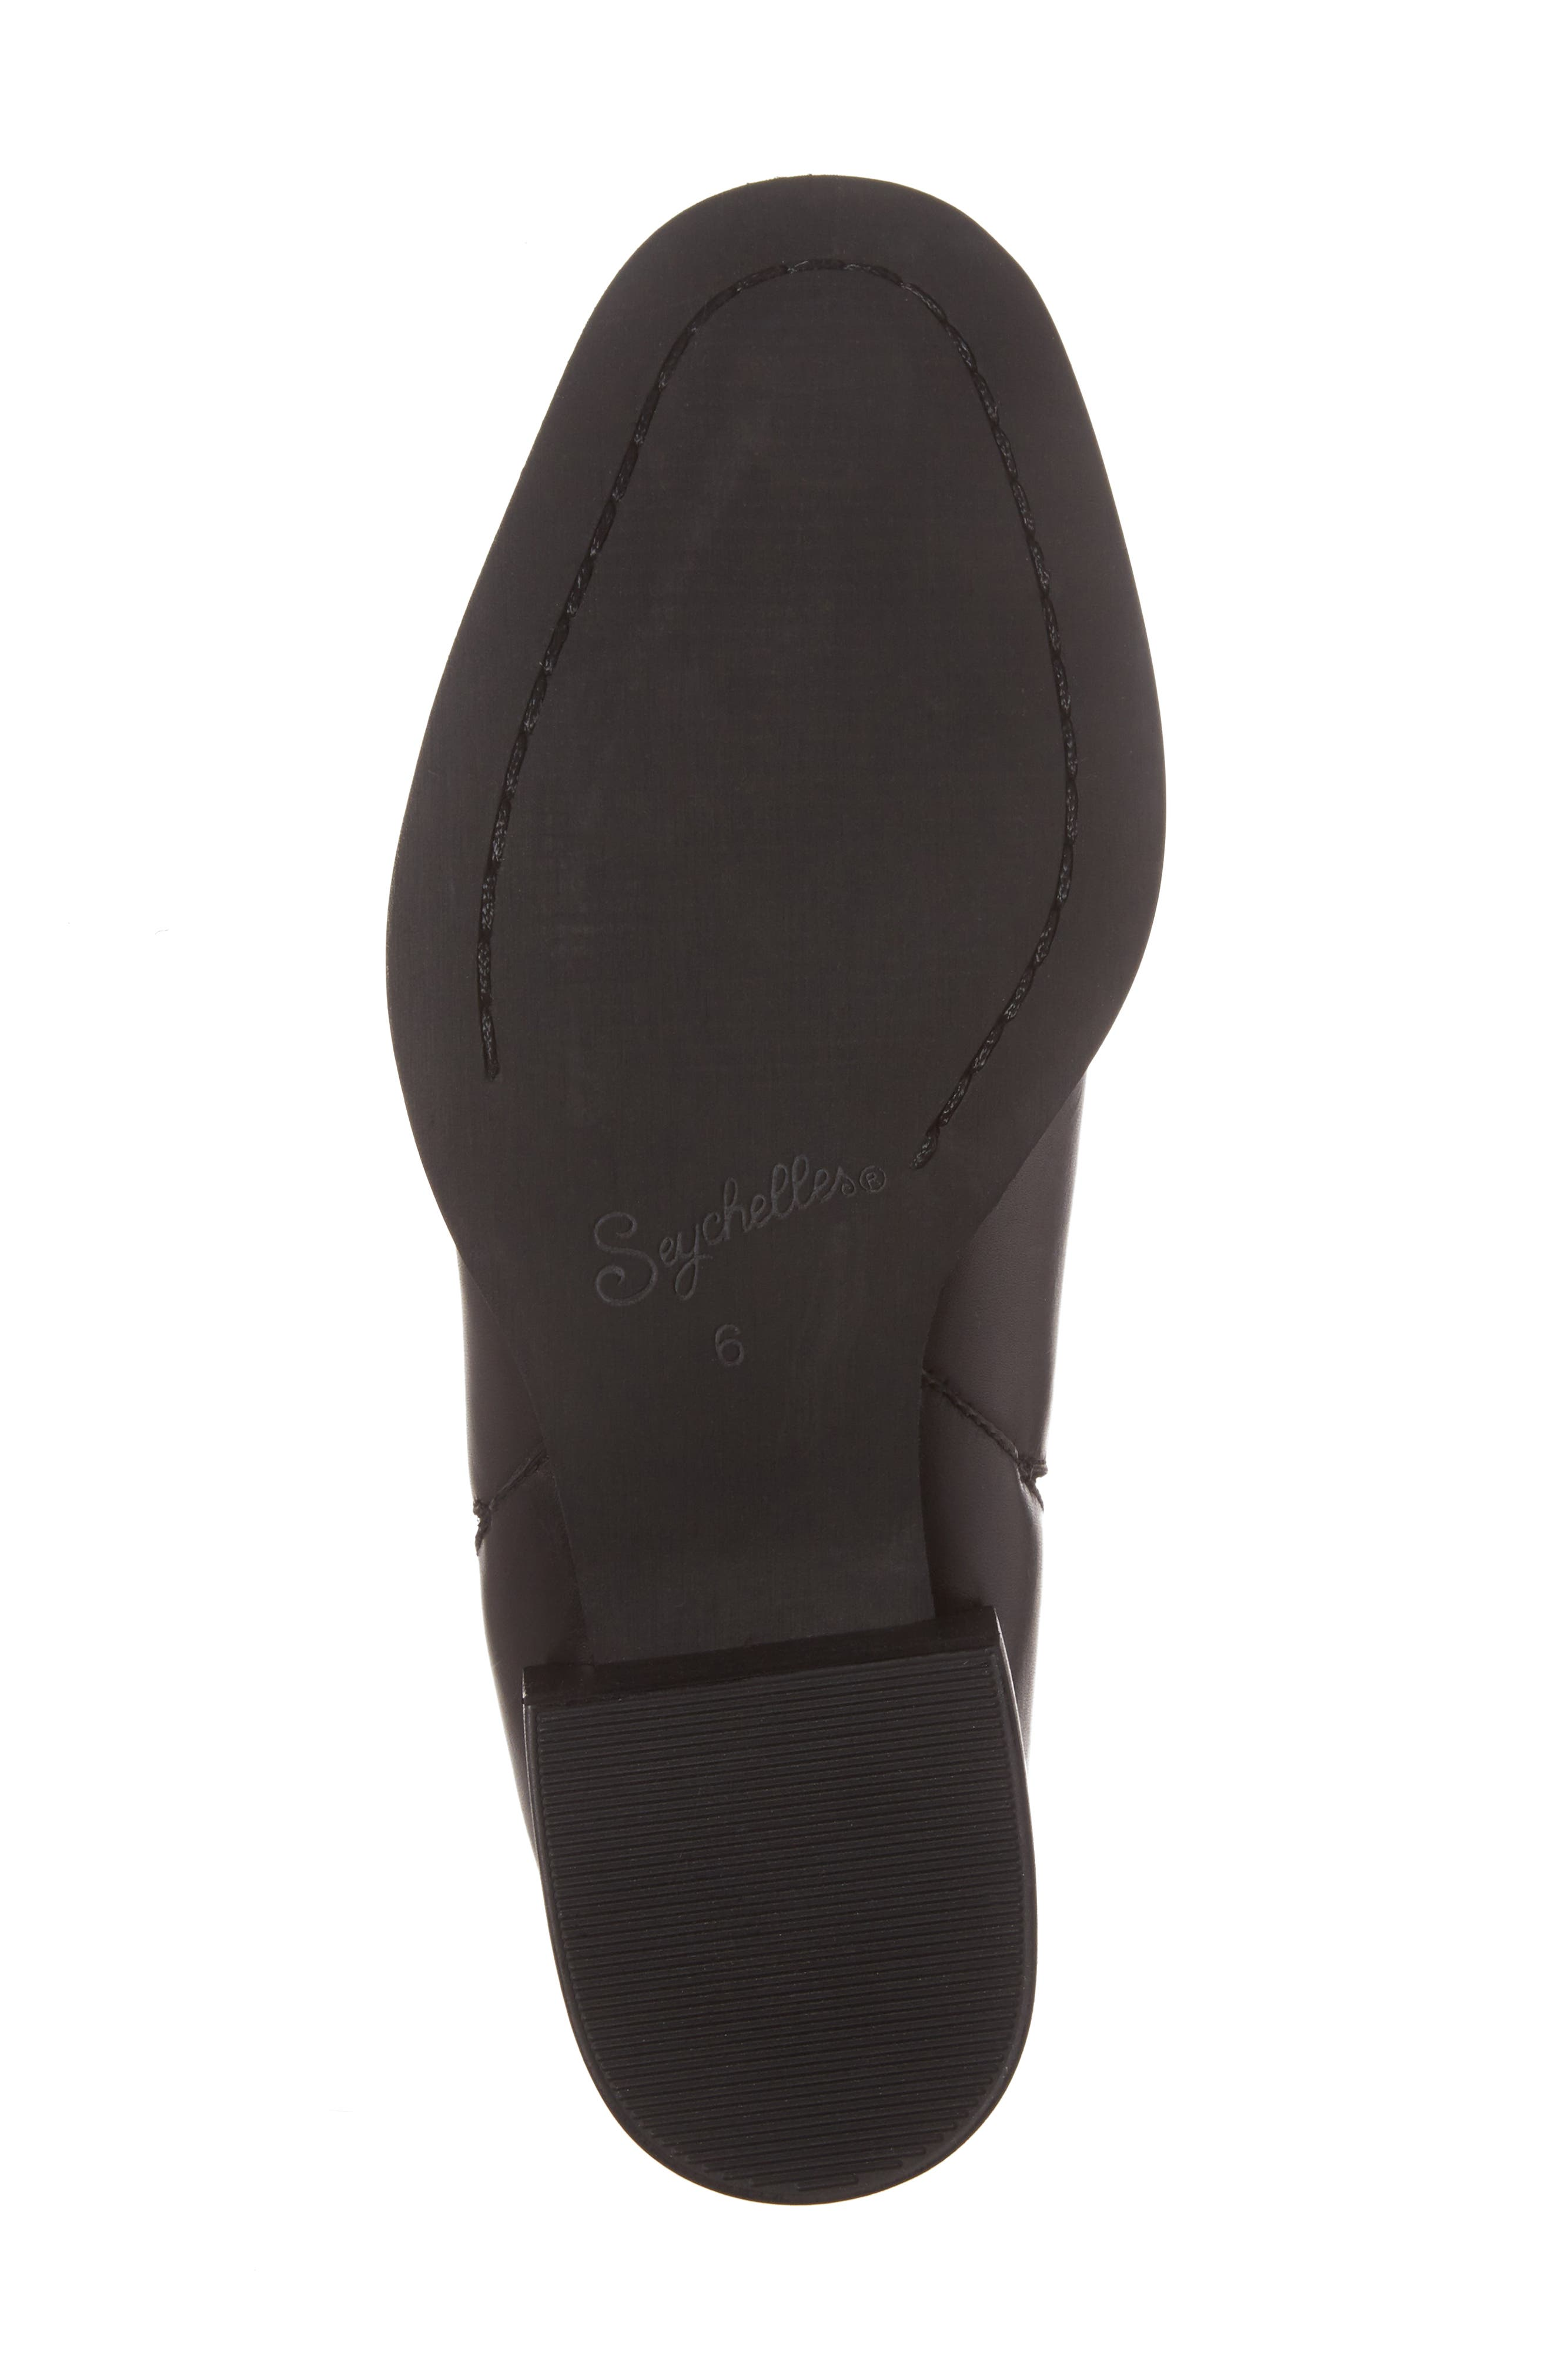 Offstage Boot,                             Alternate thumbnail 6, color,                             BLACK LEATHER